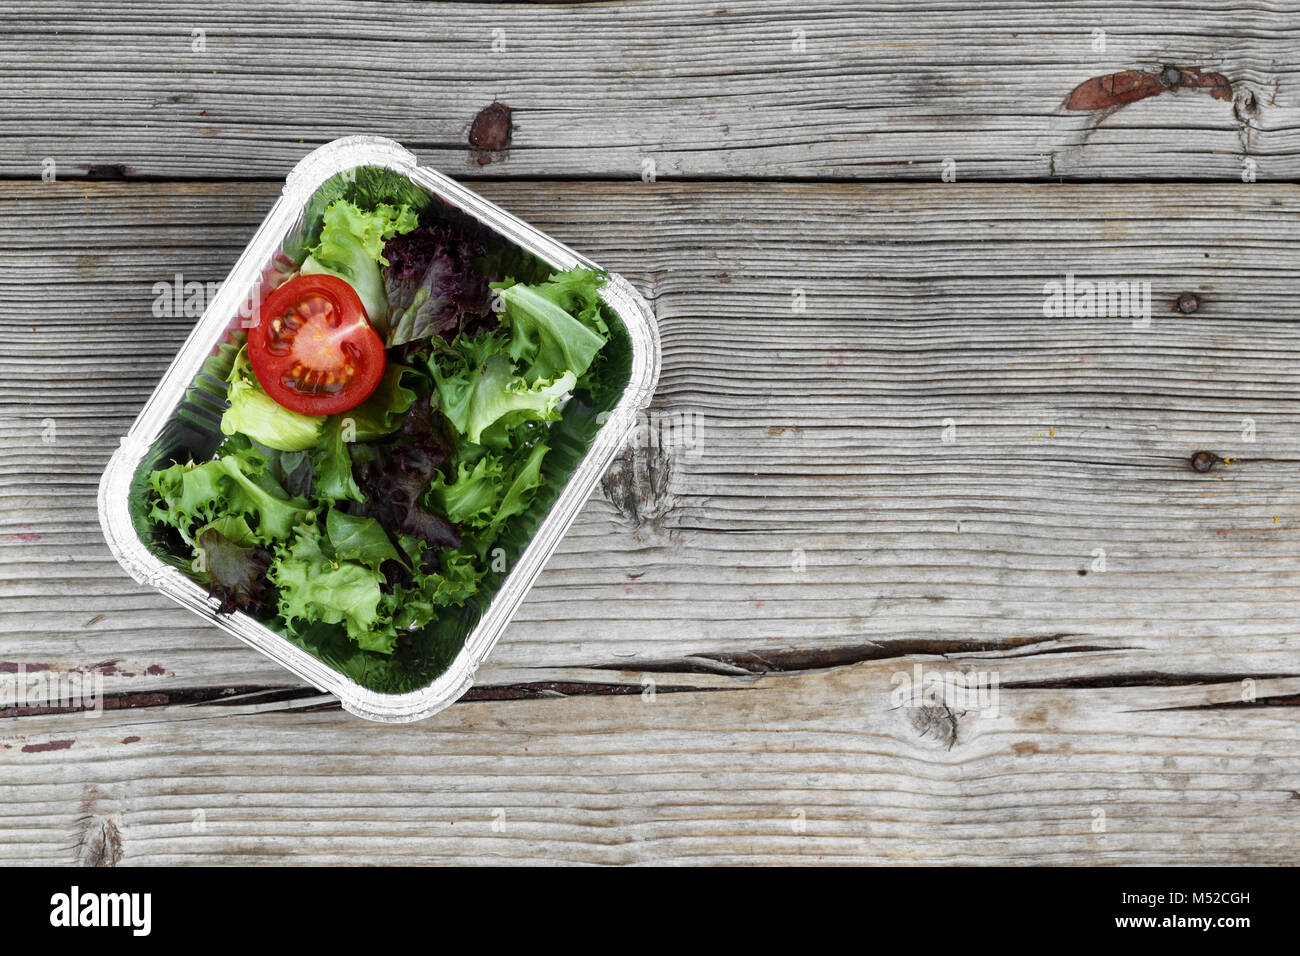 Delicious salad in a container on a wooden table. Close-up. - Stock Image